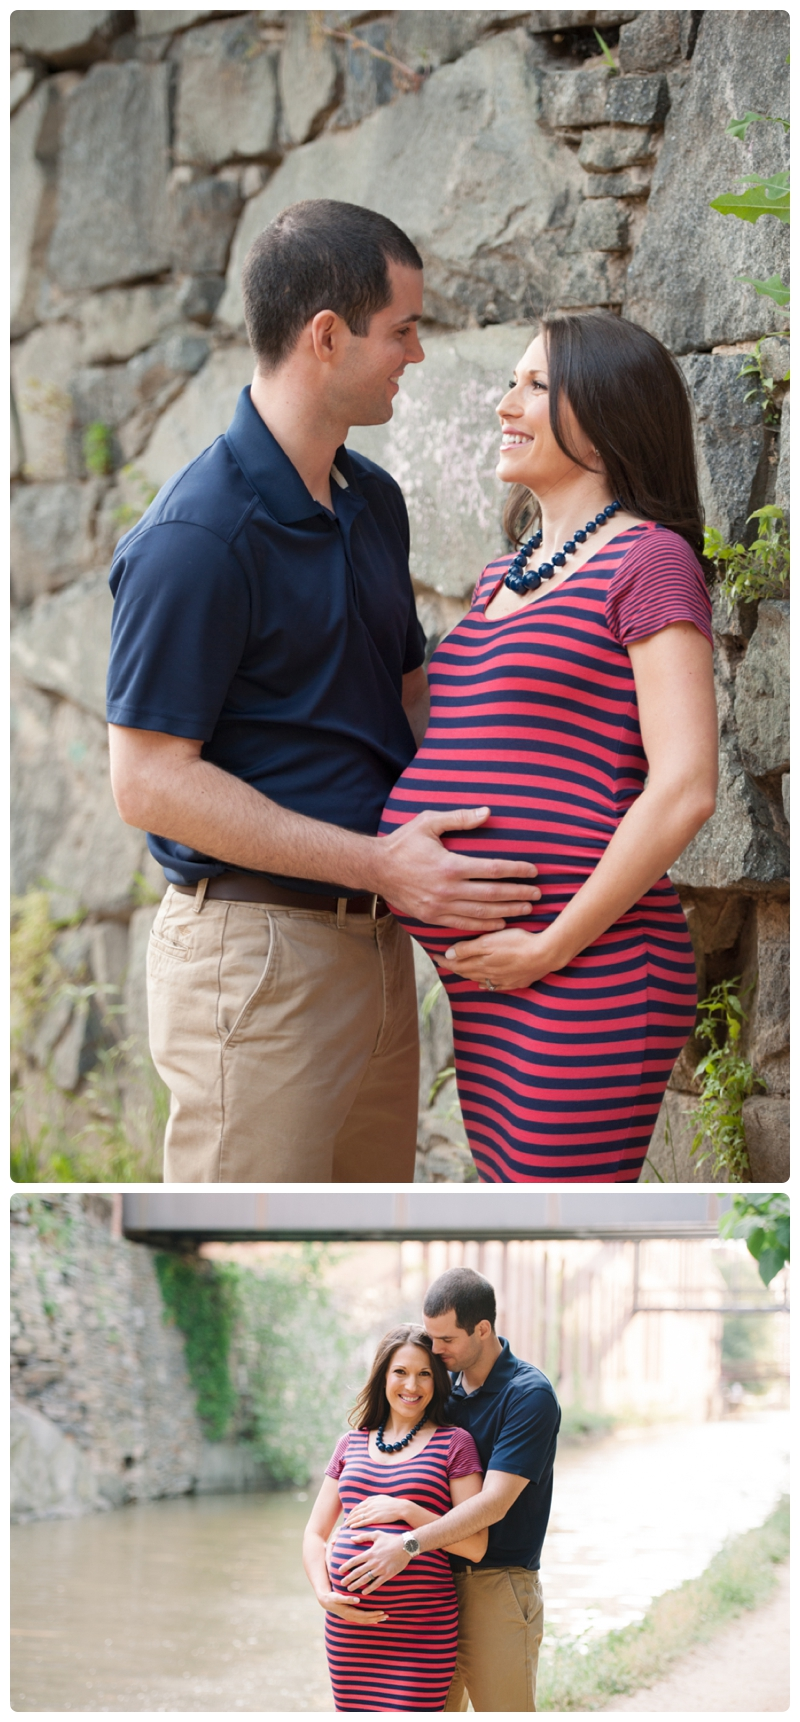 Maternity Photography in Washington, DC by www.rachaelfosterphoto.com_0074.jpg